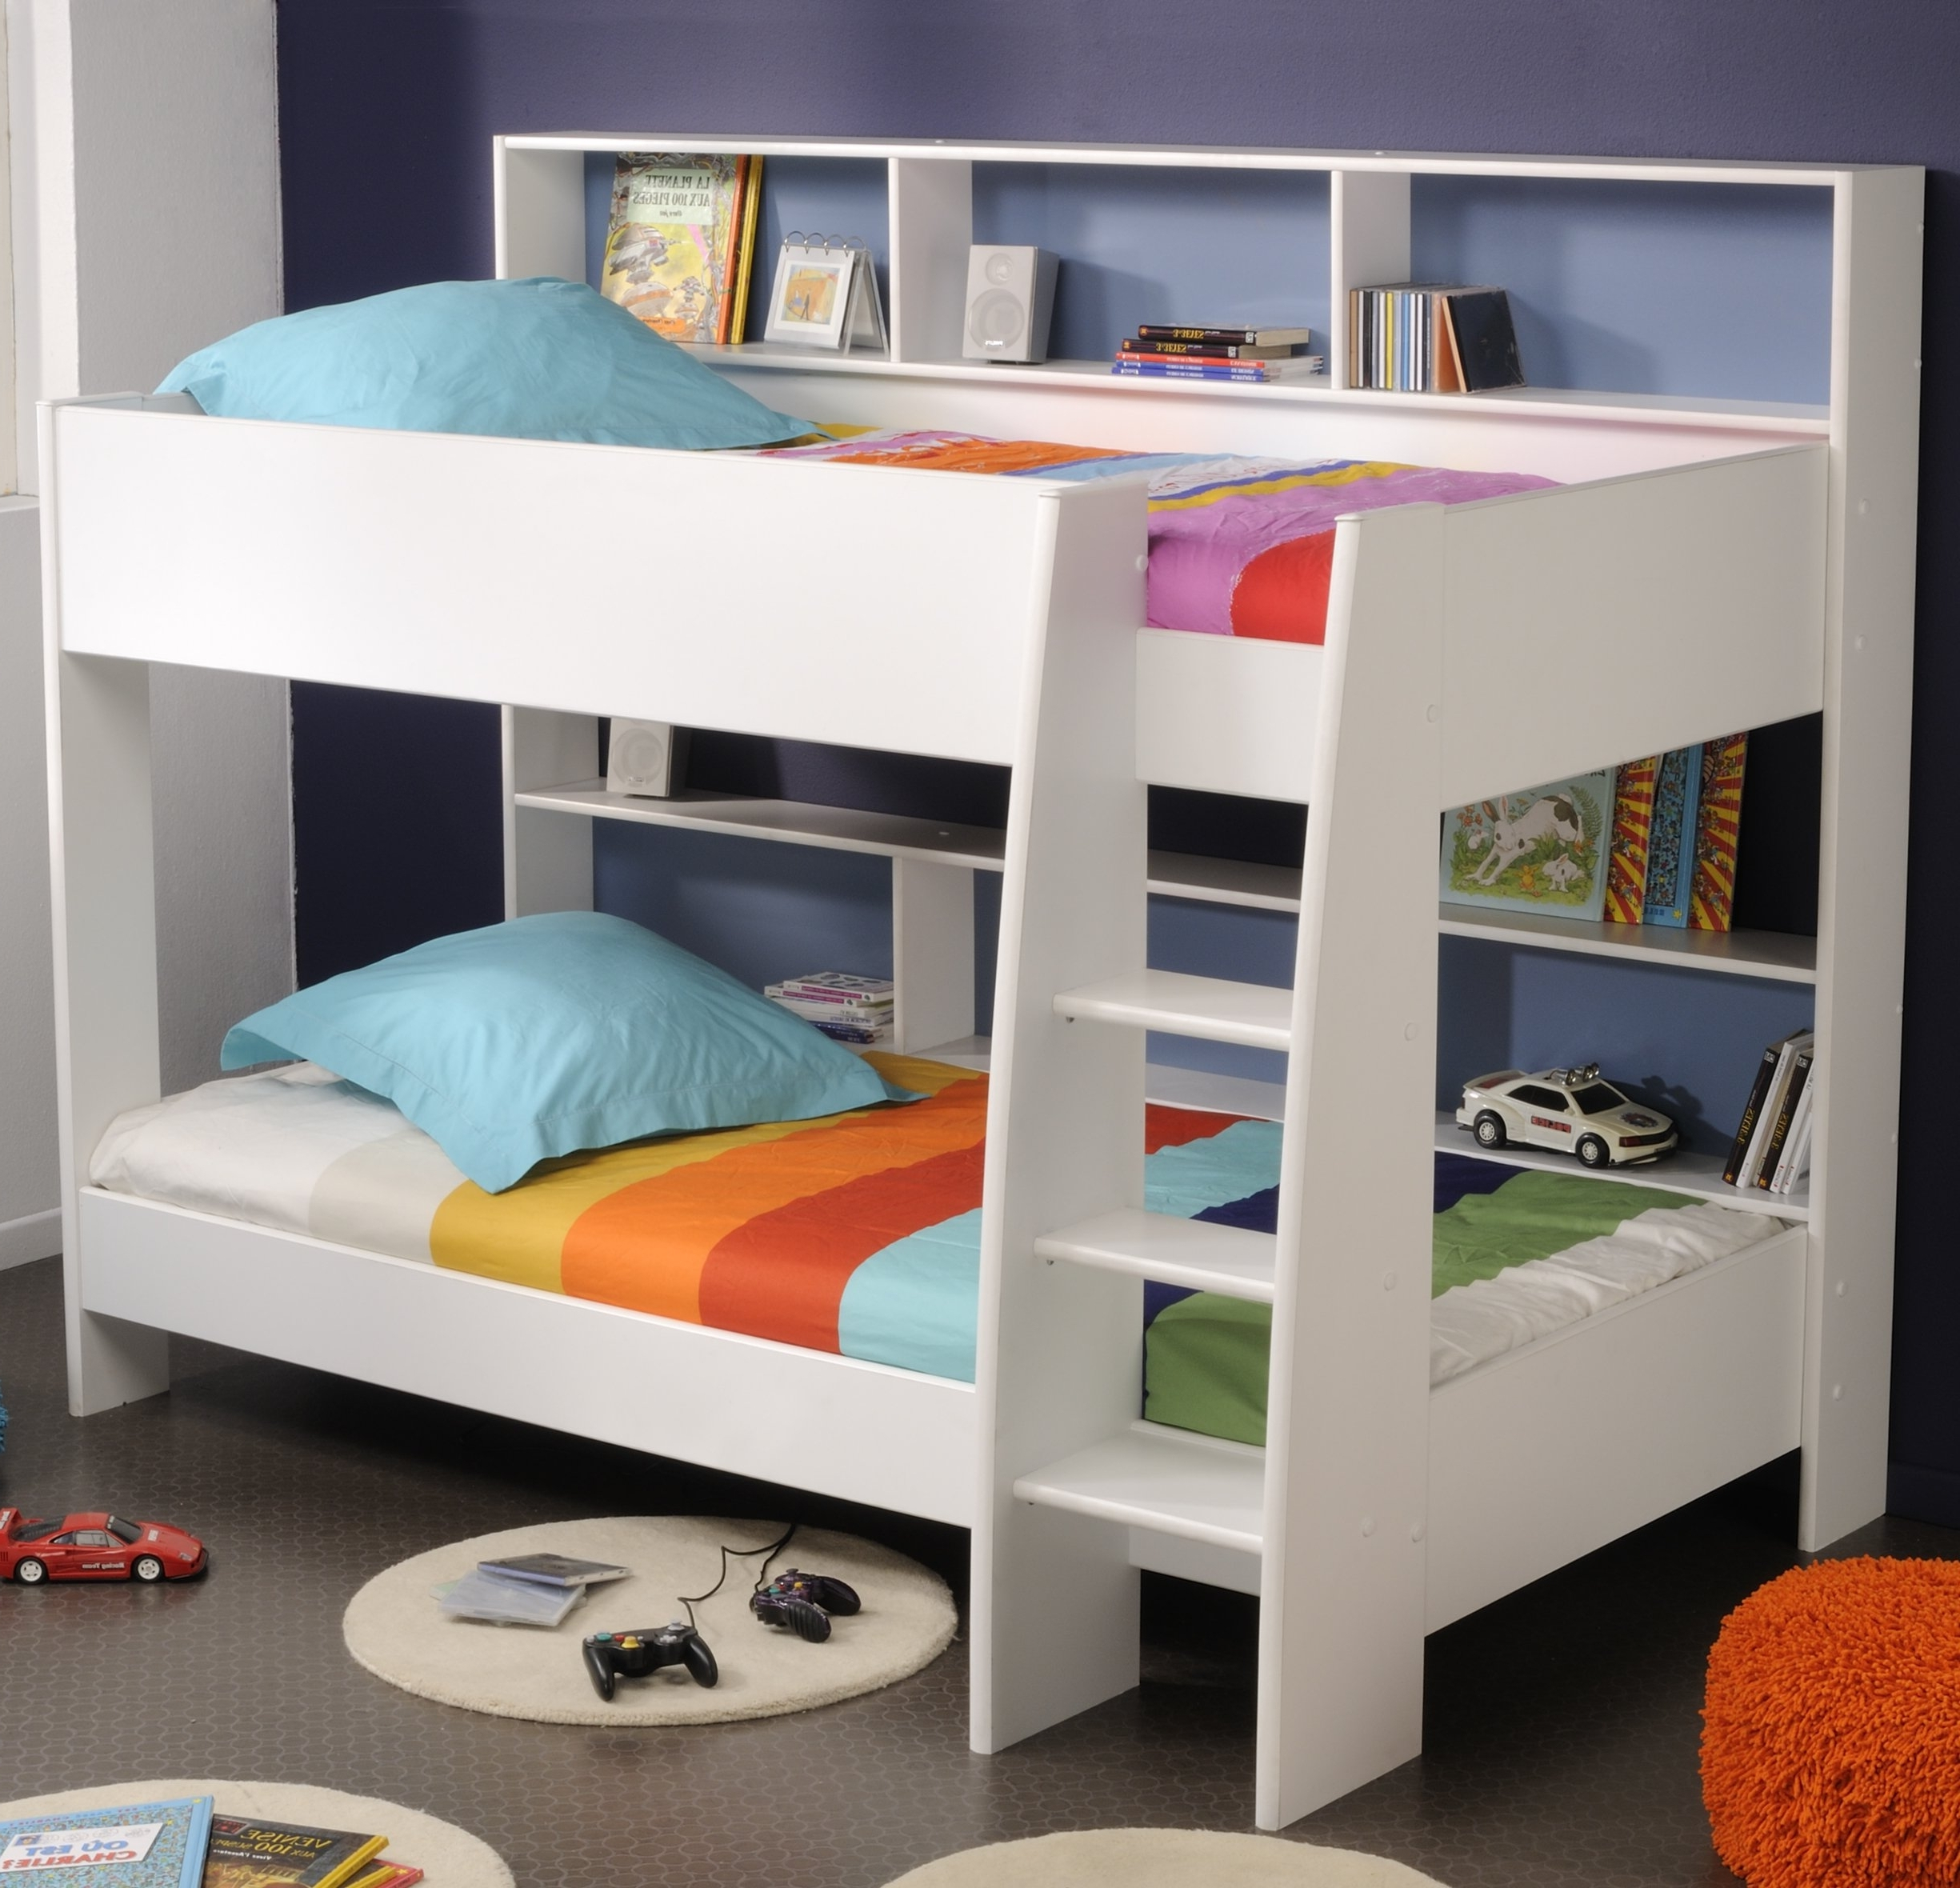 Futon Bunk Bed With Desk | Modern Bunk Beds | Wood Bunk Bed Plans